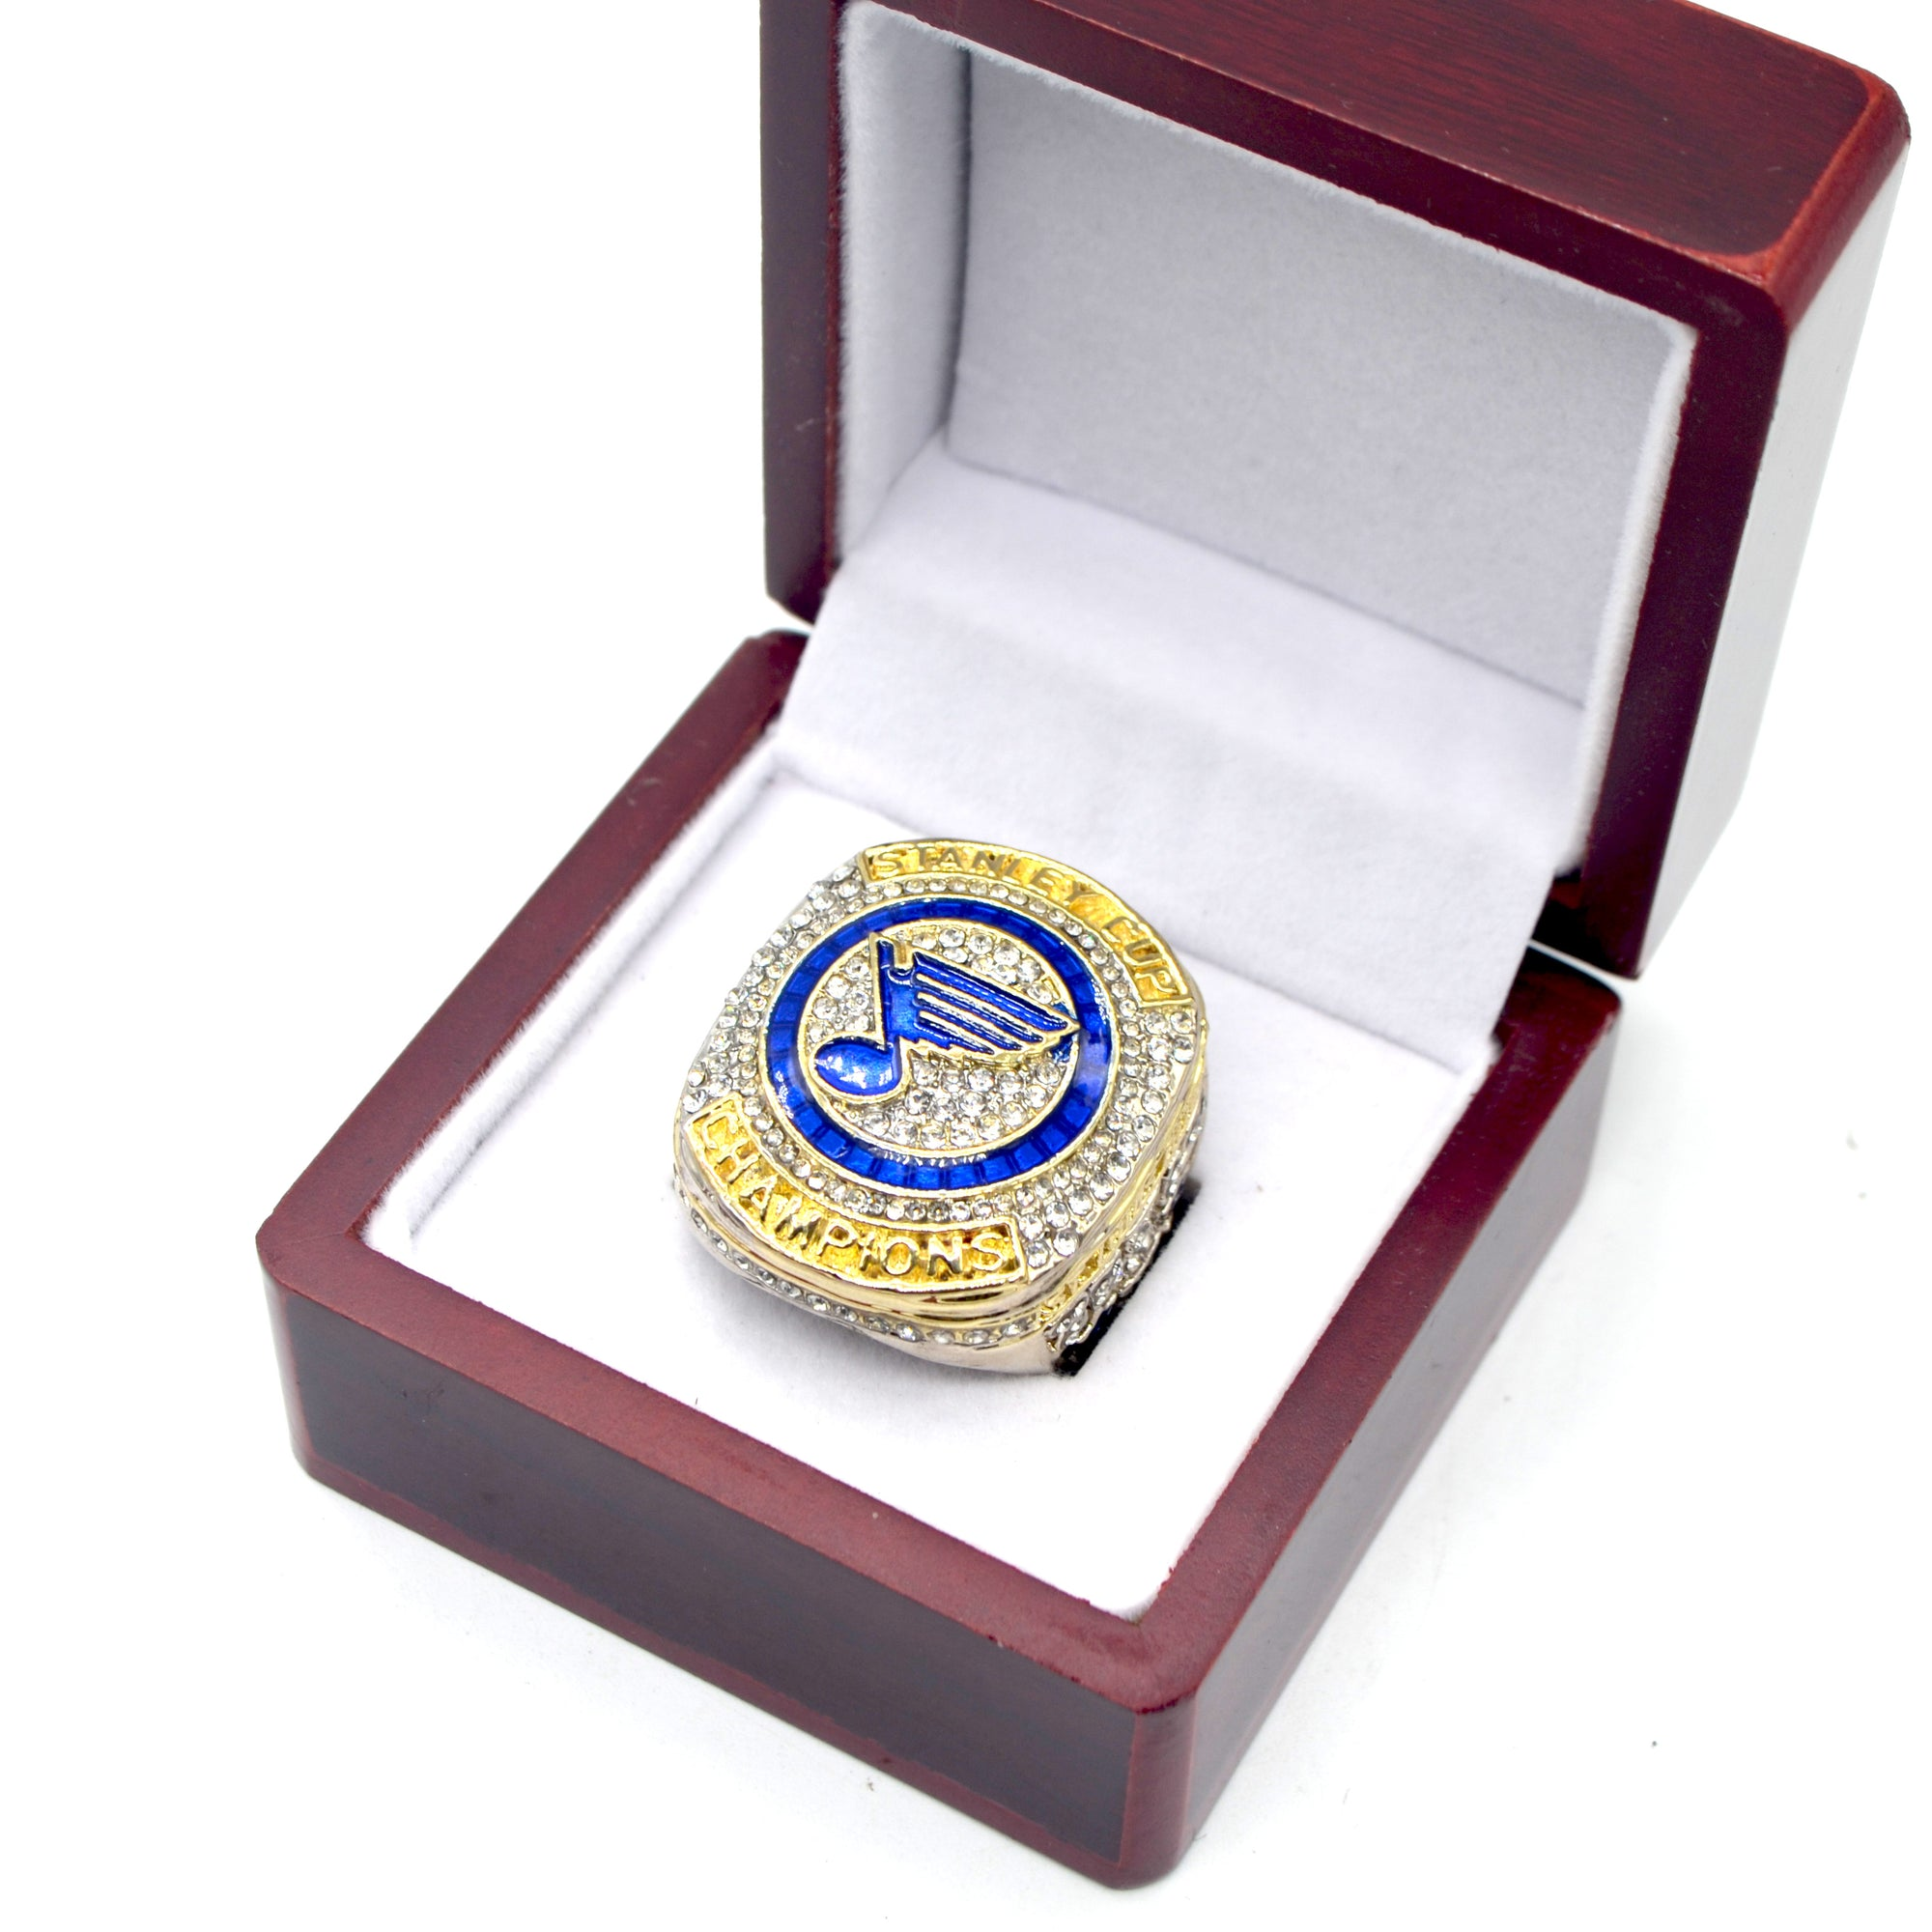 2018 2019 St. Louis Blues Championship Ring Stanley Cup - MS Unique